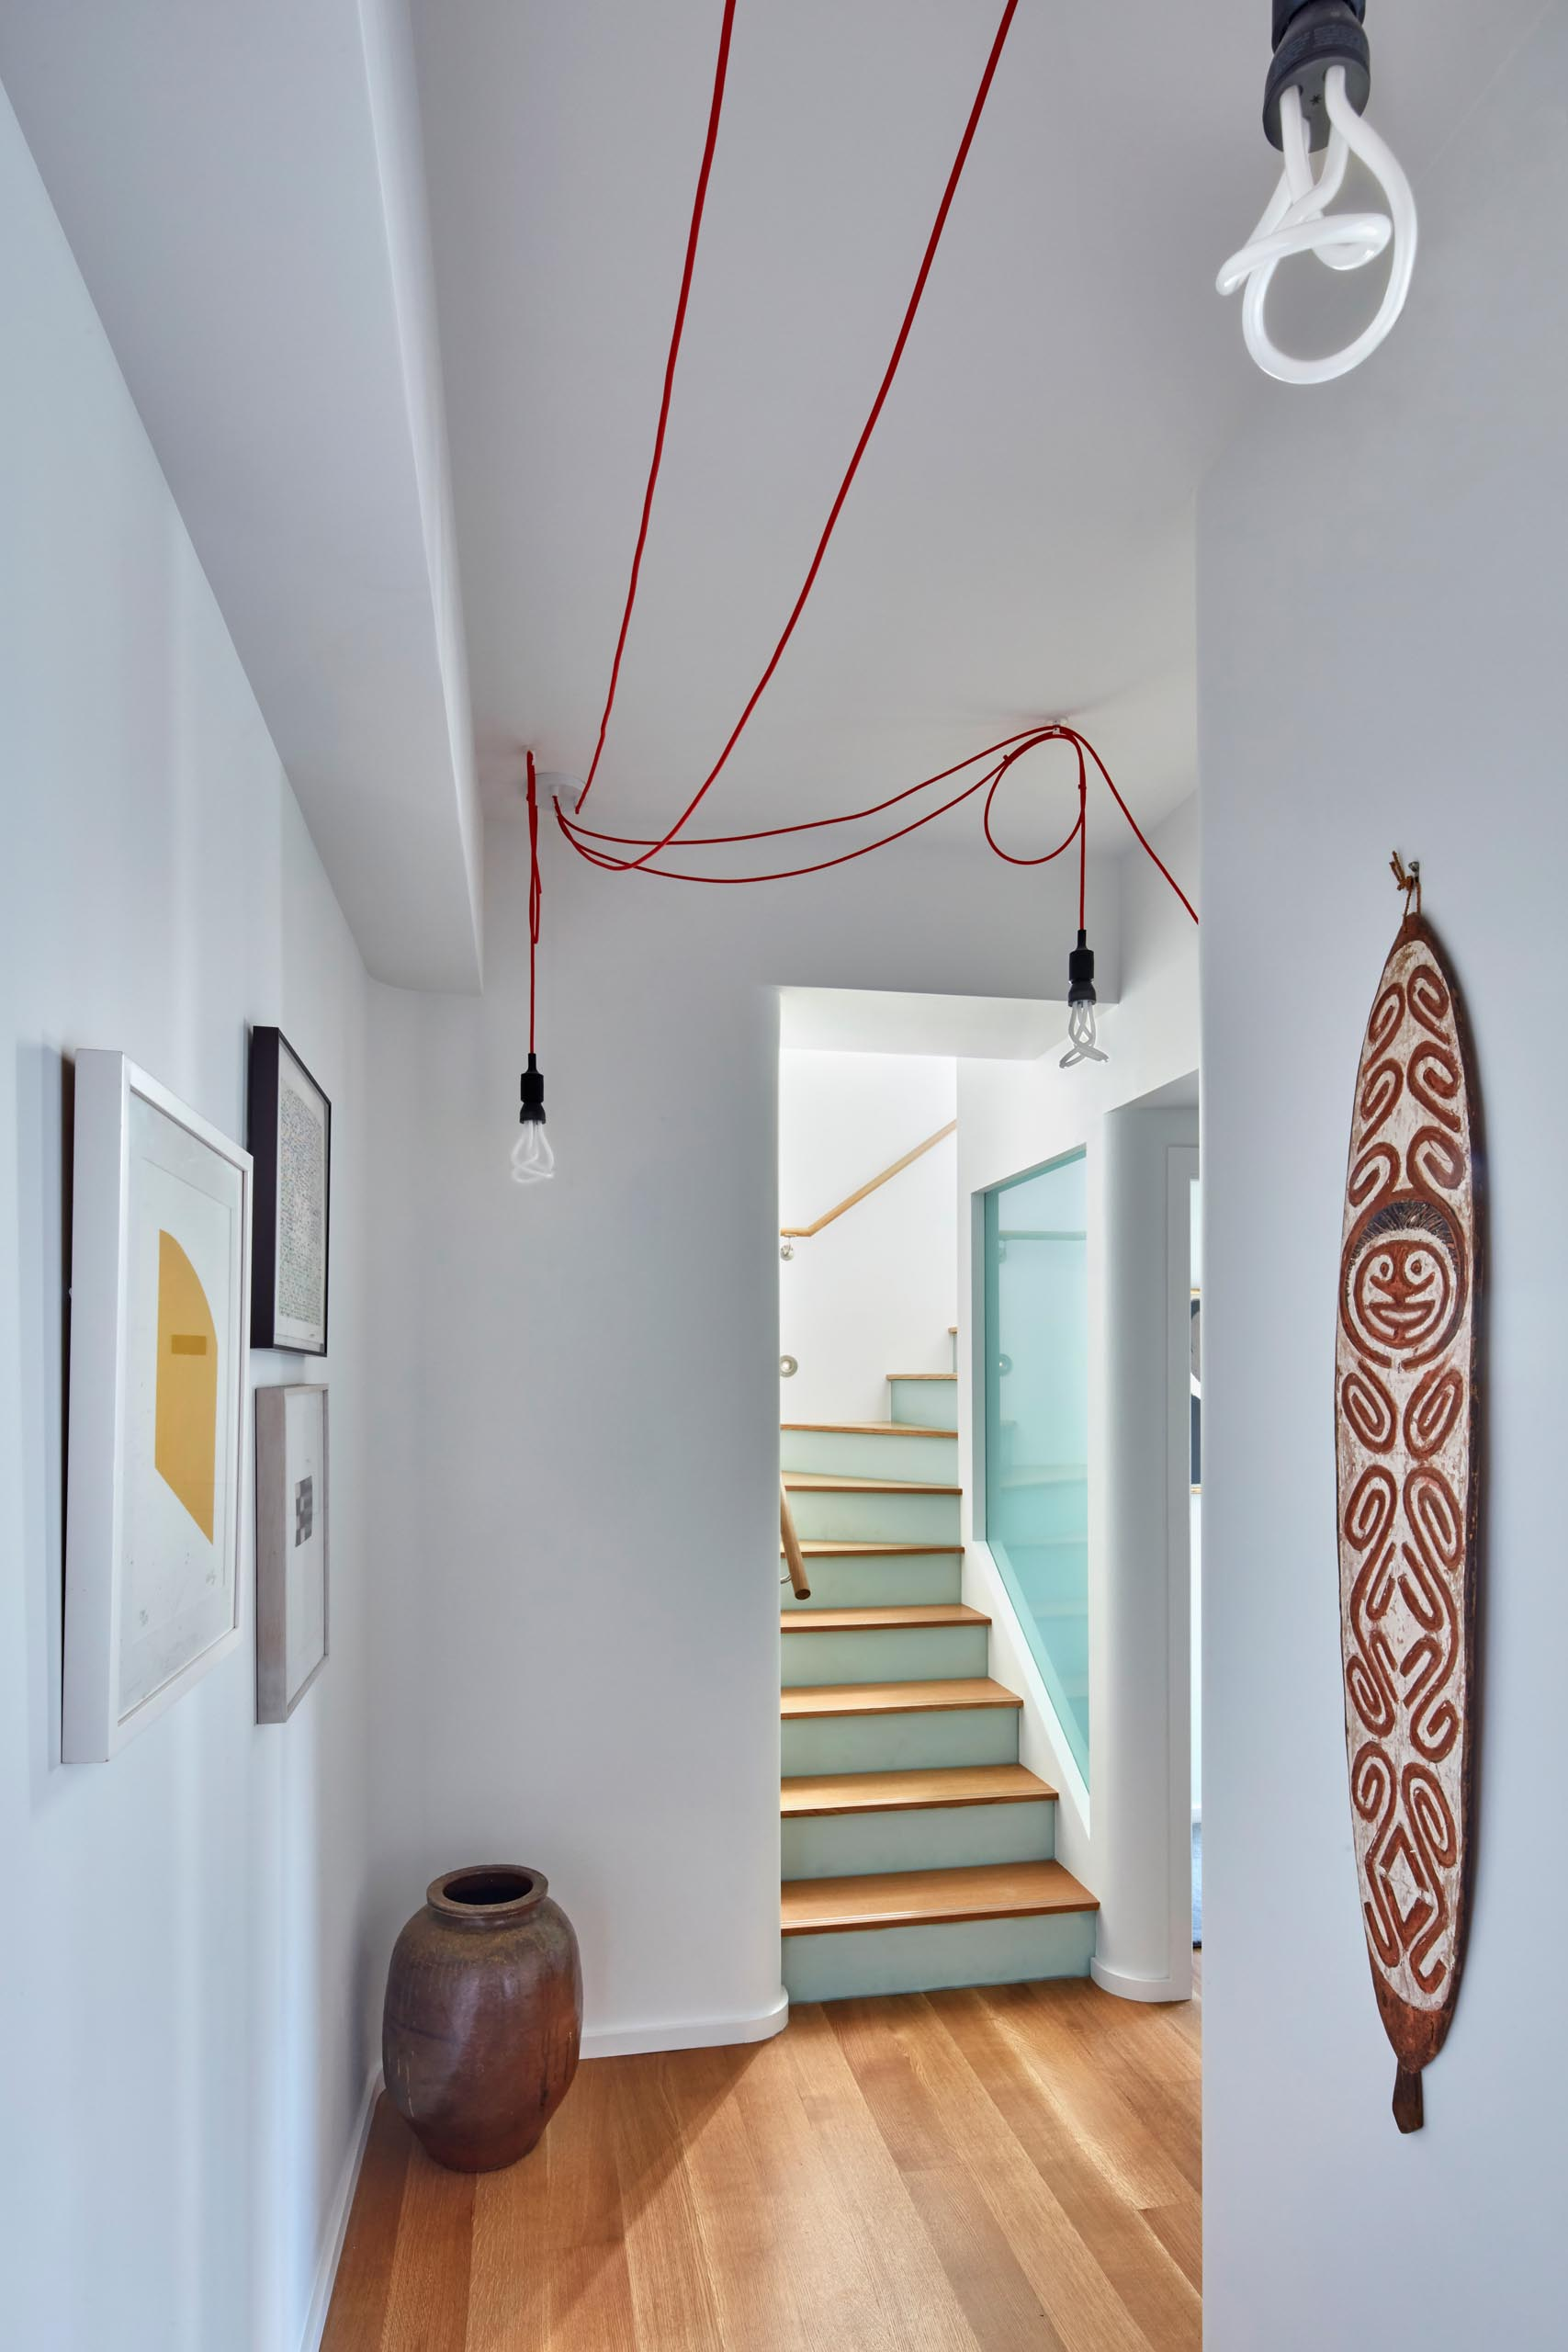 A staircase with wood treads opens up to a hallway with artwork.